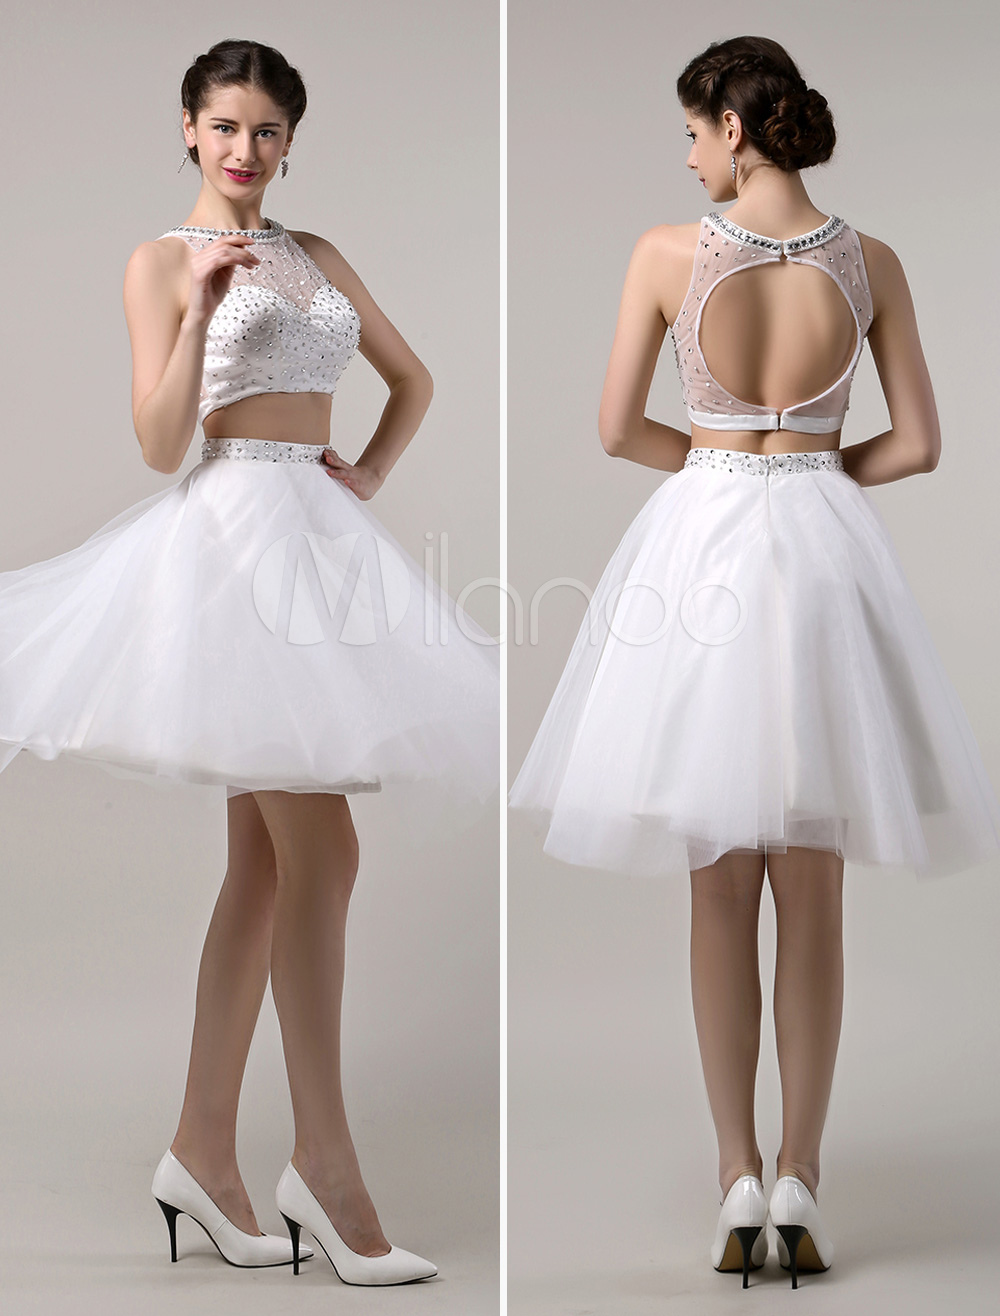 Two Piece Prom Dresses 2018 Short White Prom Dress Crop Top Cutout Back With Tulle Tutu Skirt (Wedding) photo